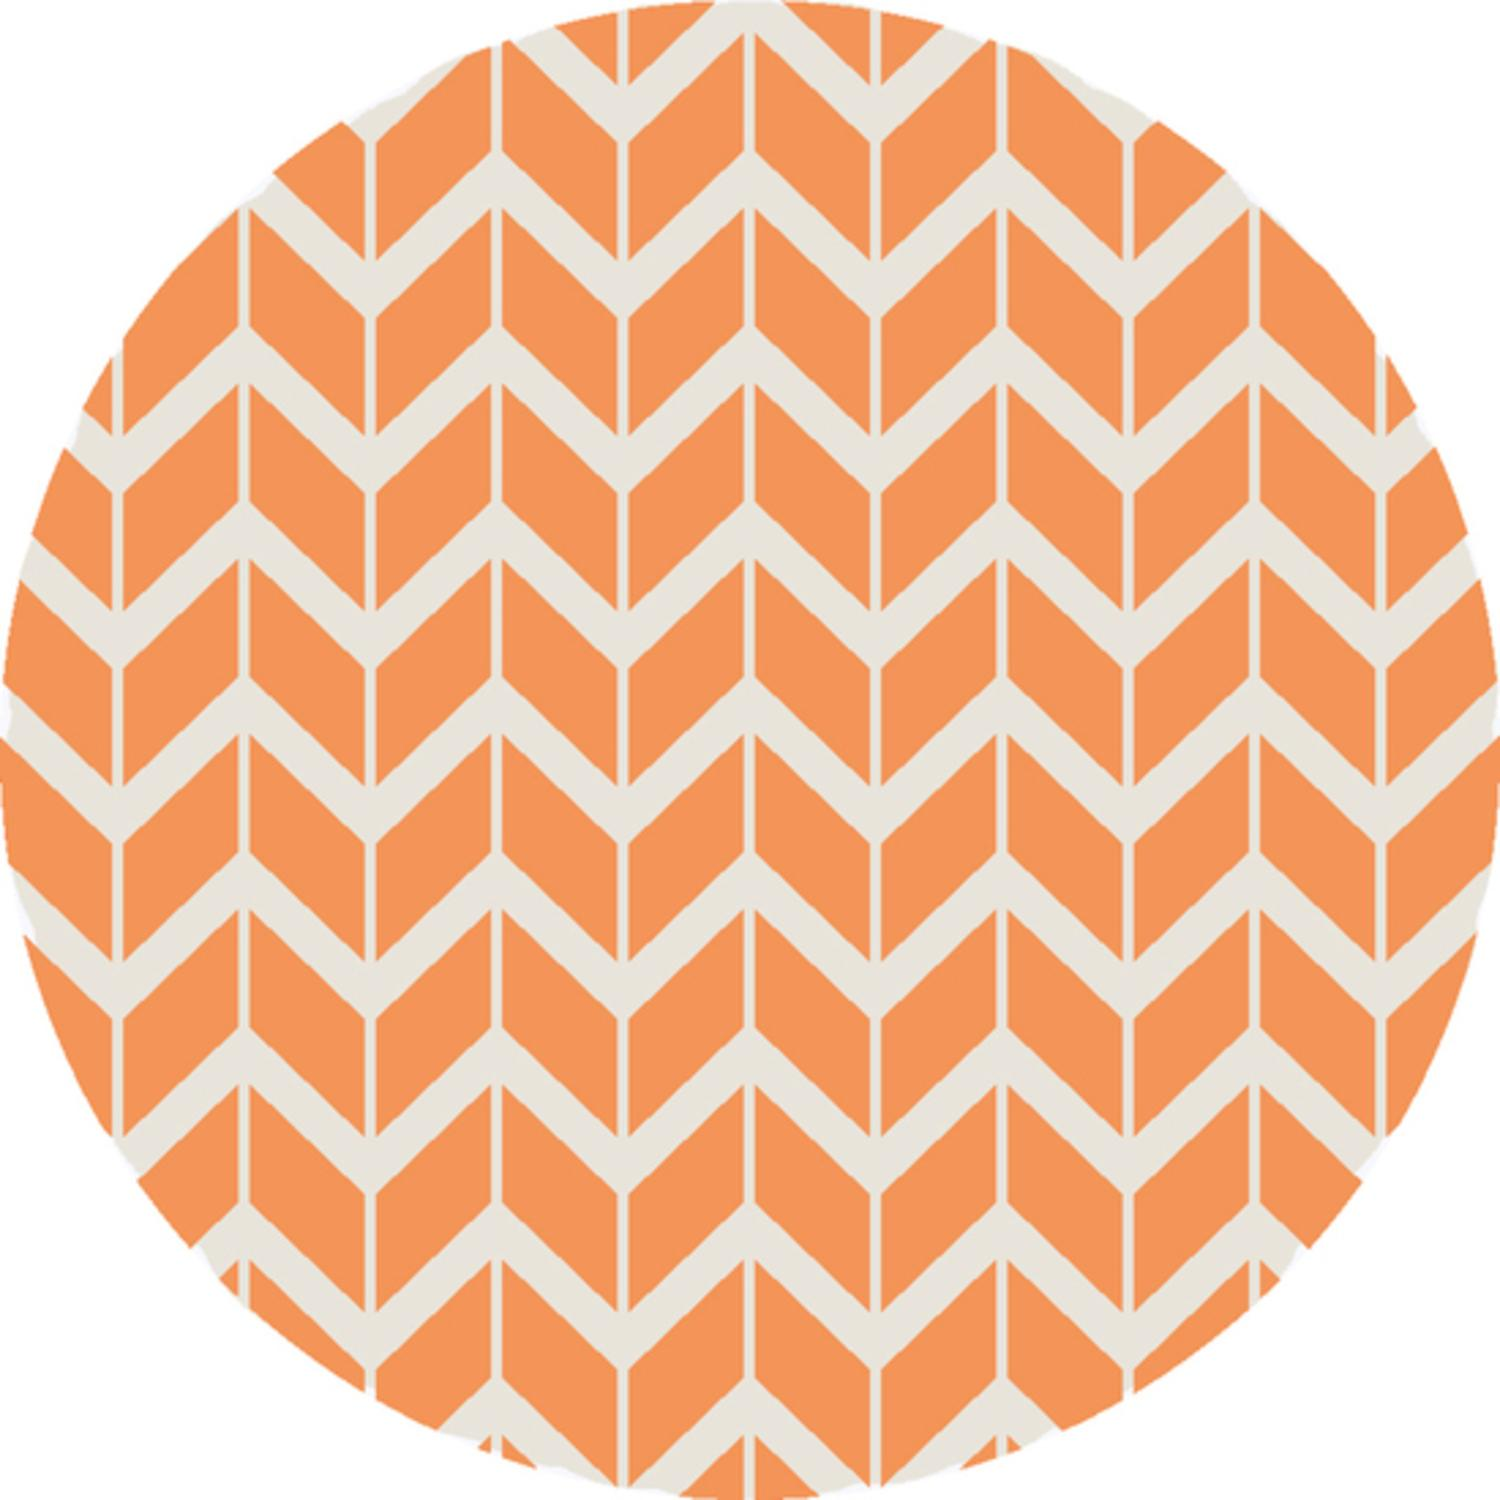 8' Chevron Pathway Orange and White Hand Woven Wool Round Area Throw Rug